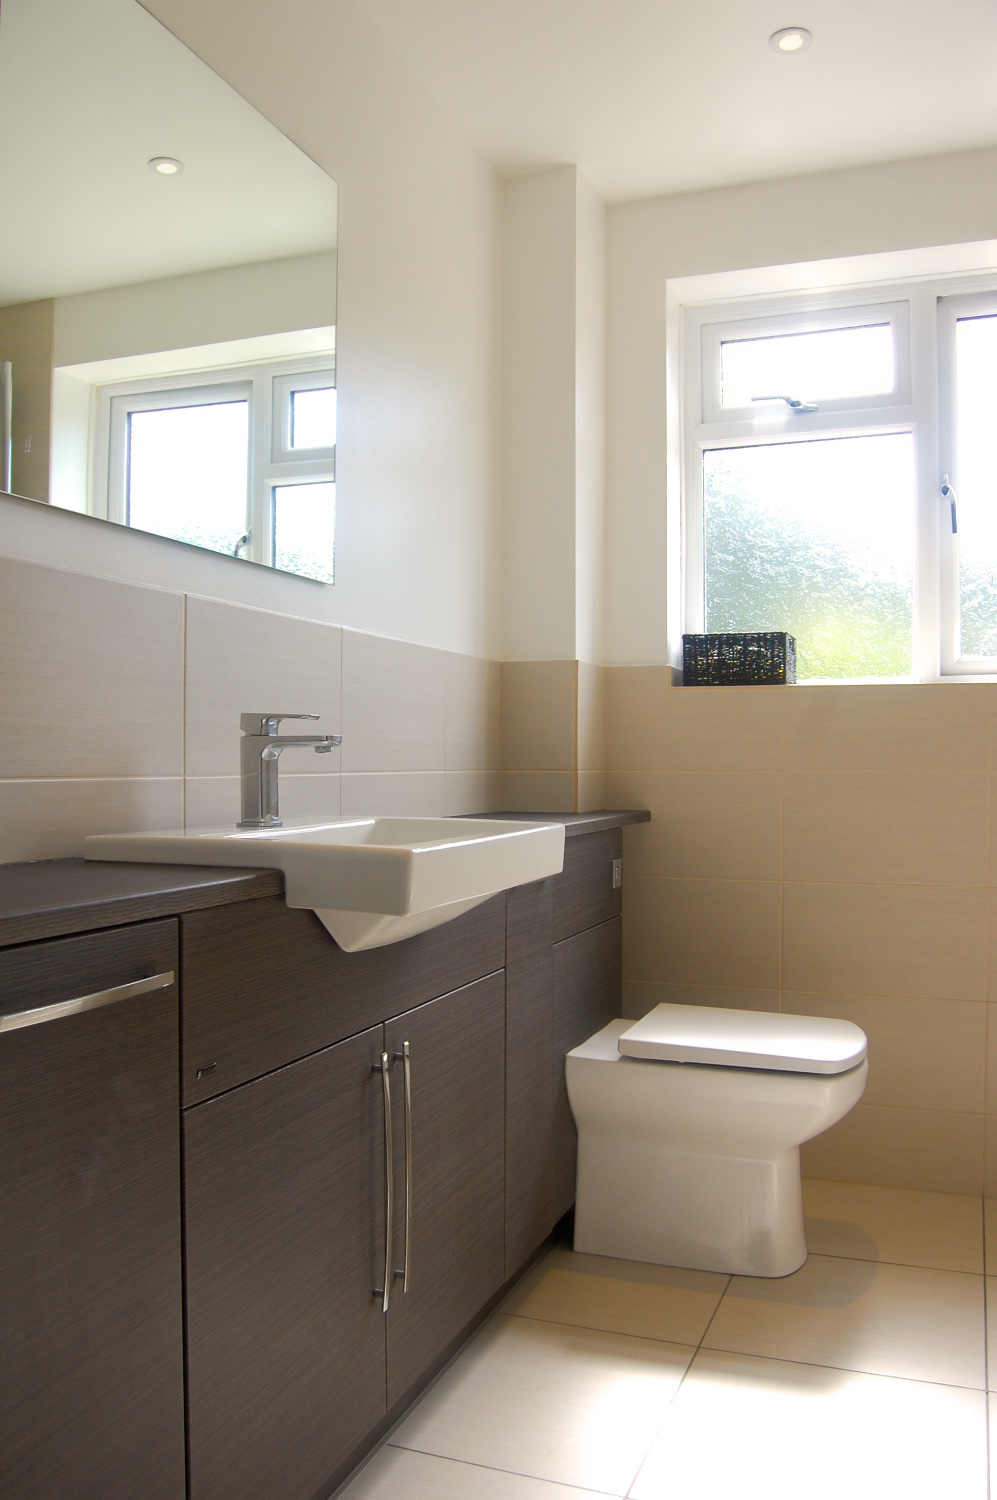 £8,200 - Family Bathroom with full wall of fitted furniture